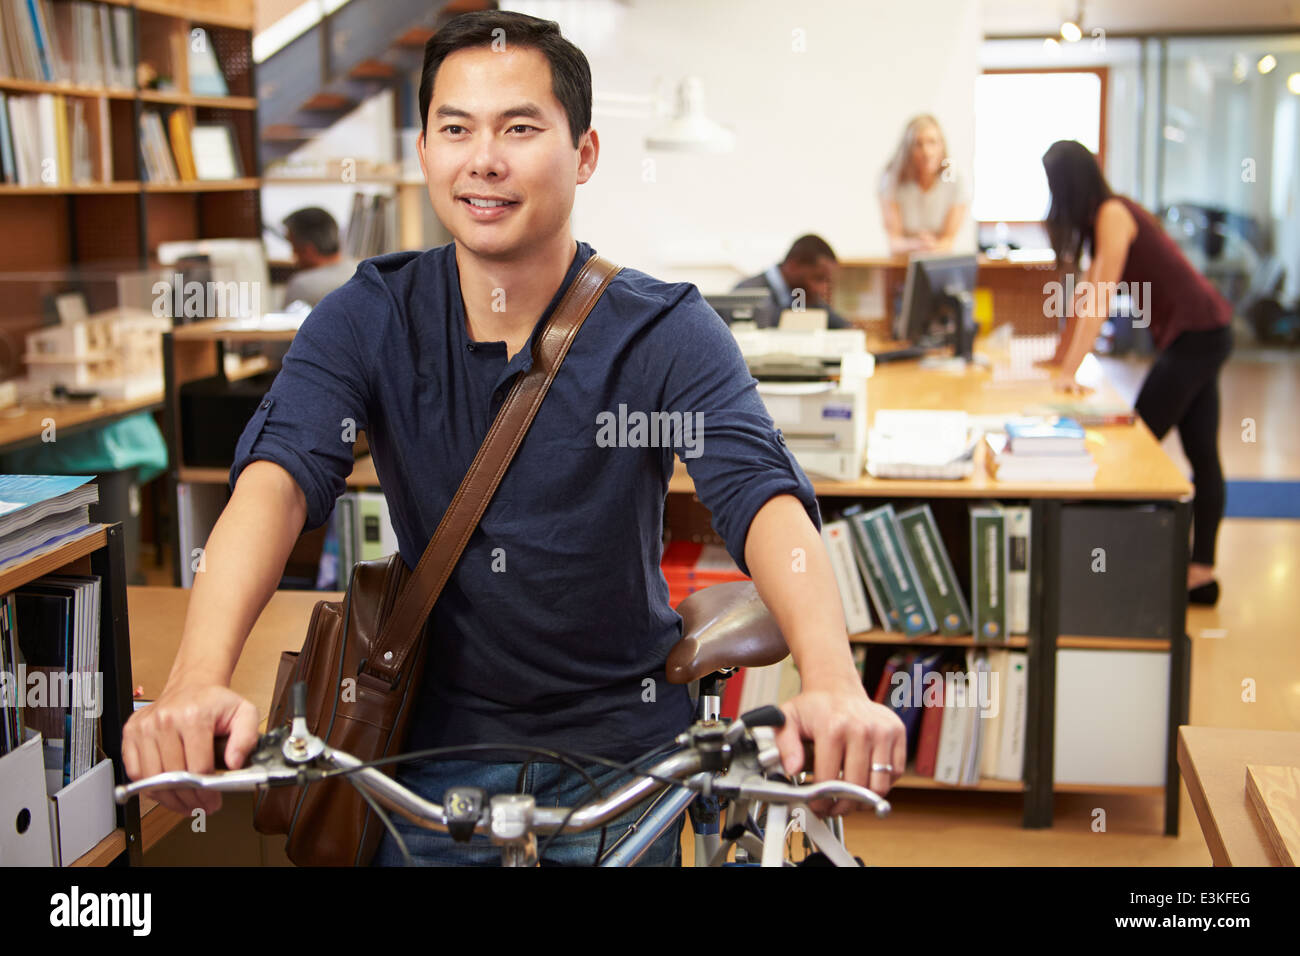 Architect Arrives At Work On Bike Pushing It Through Office - Stock Image